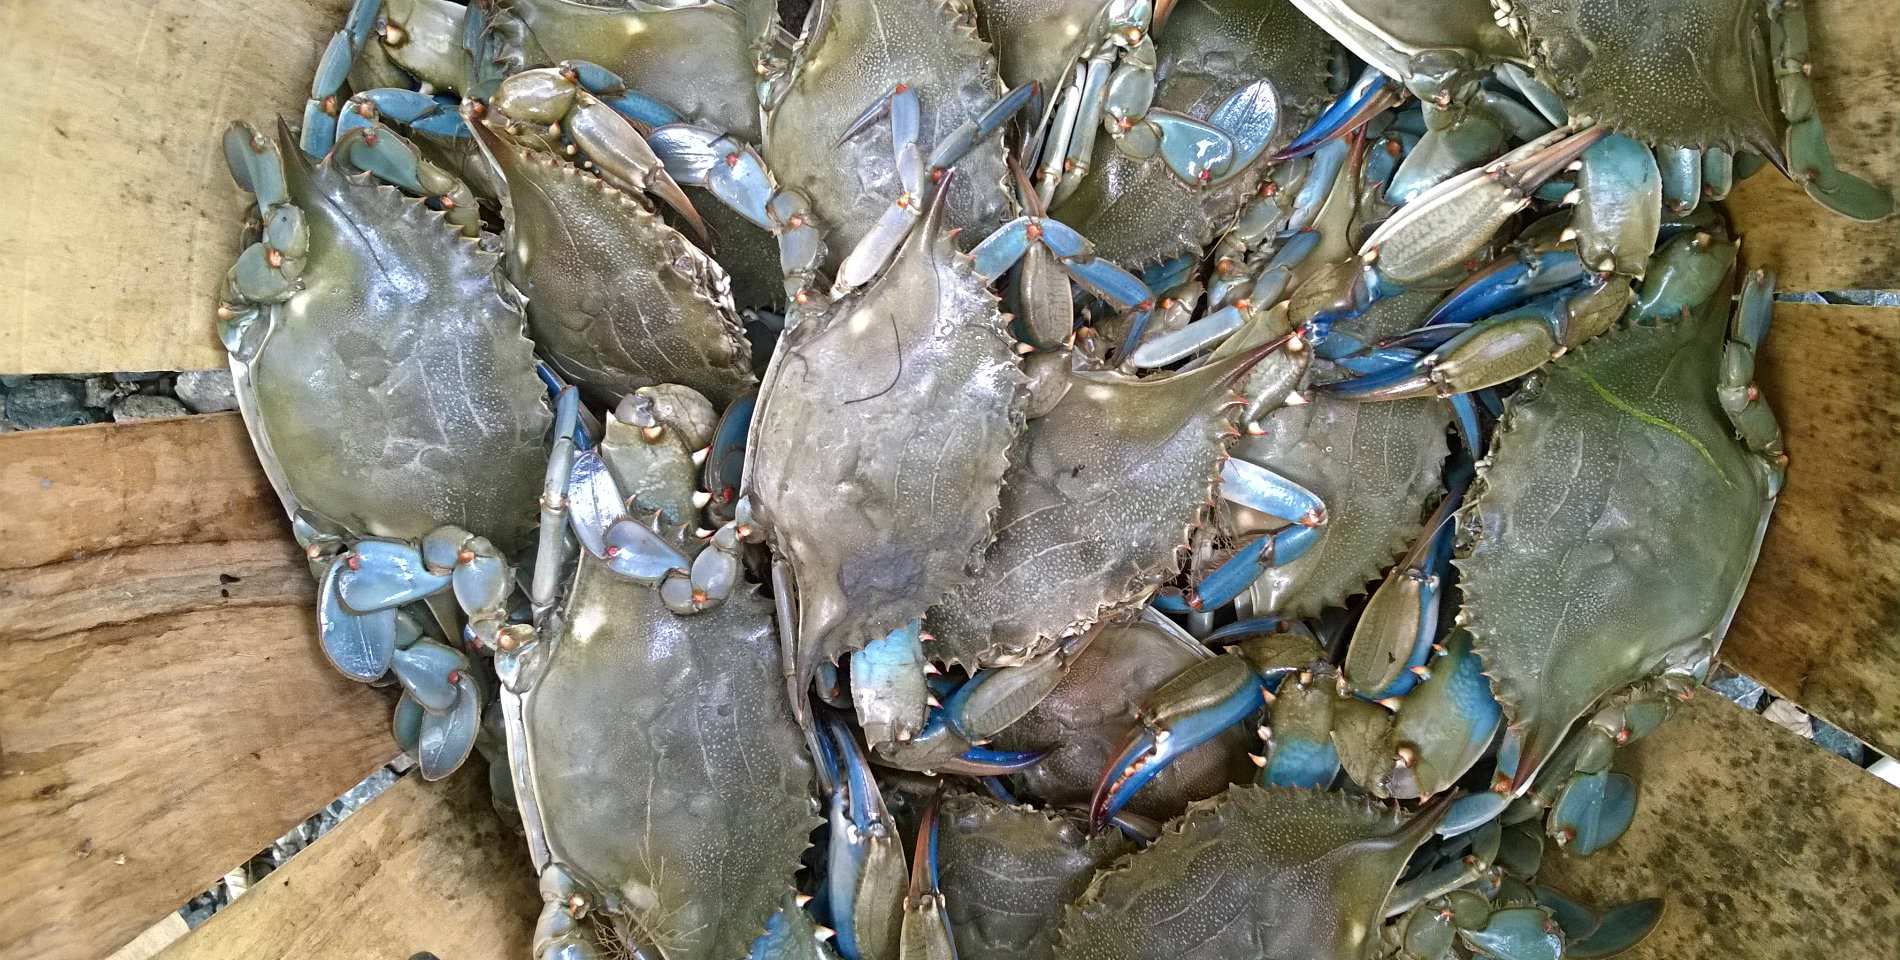 A wood  planked basket containing a dozen, freshly caught blue crabs.